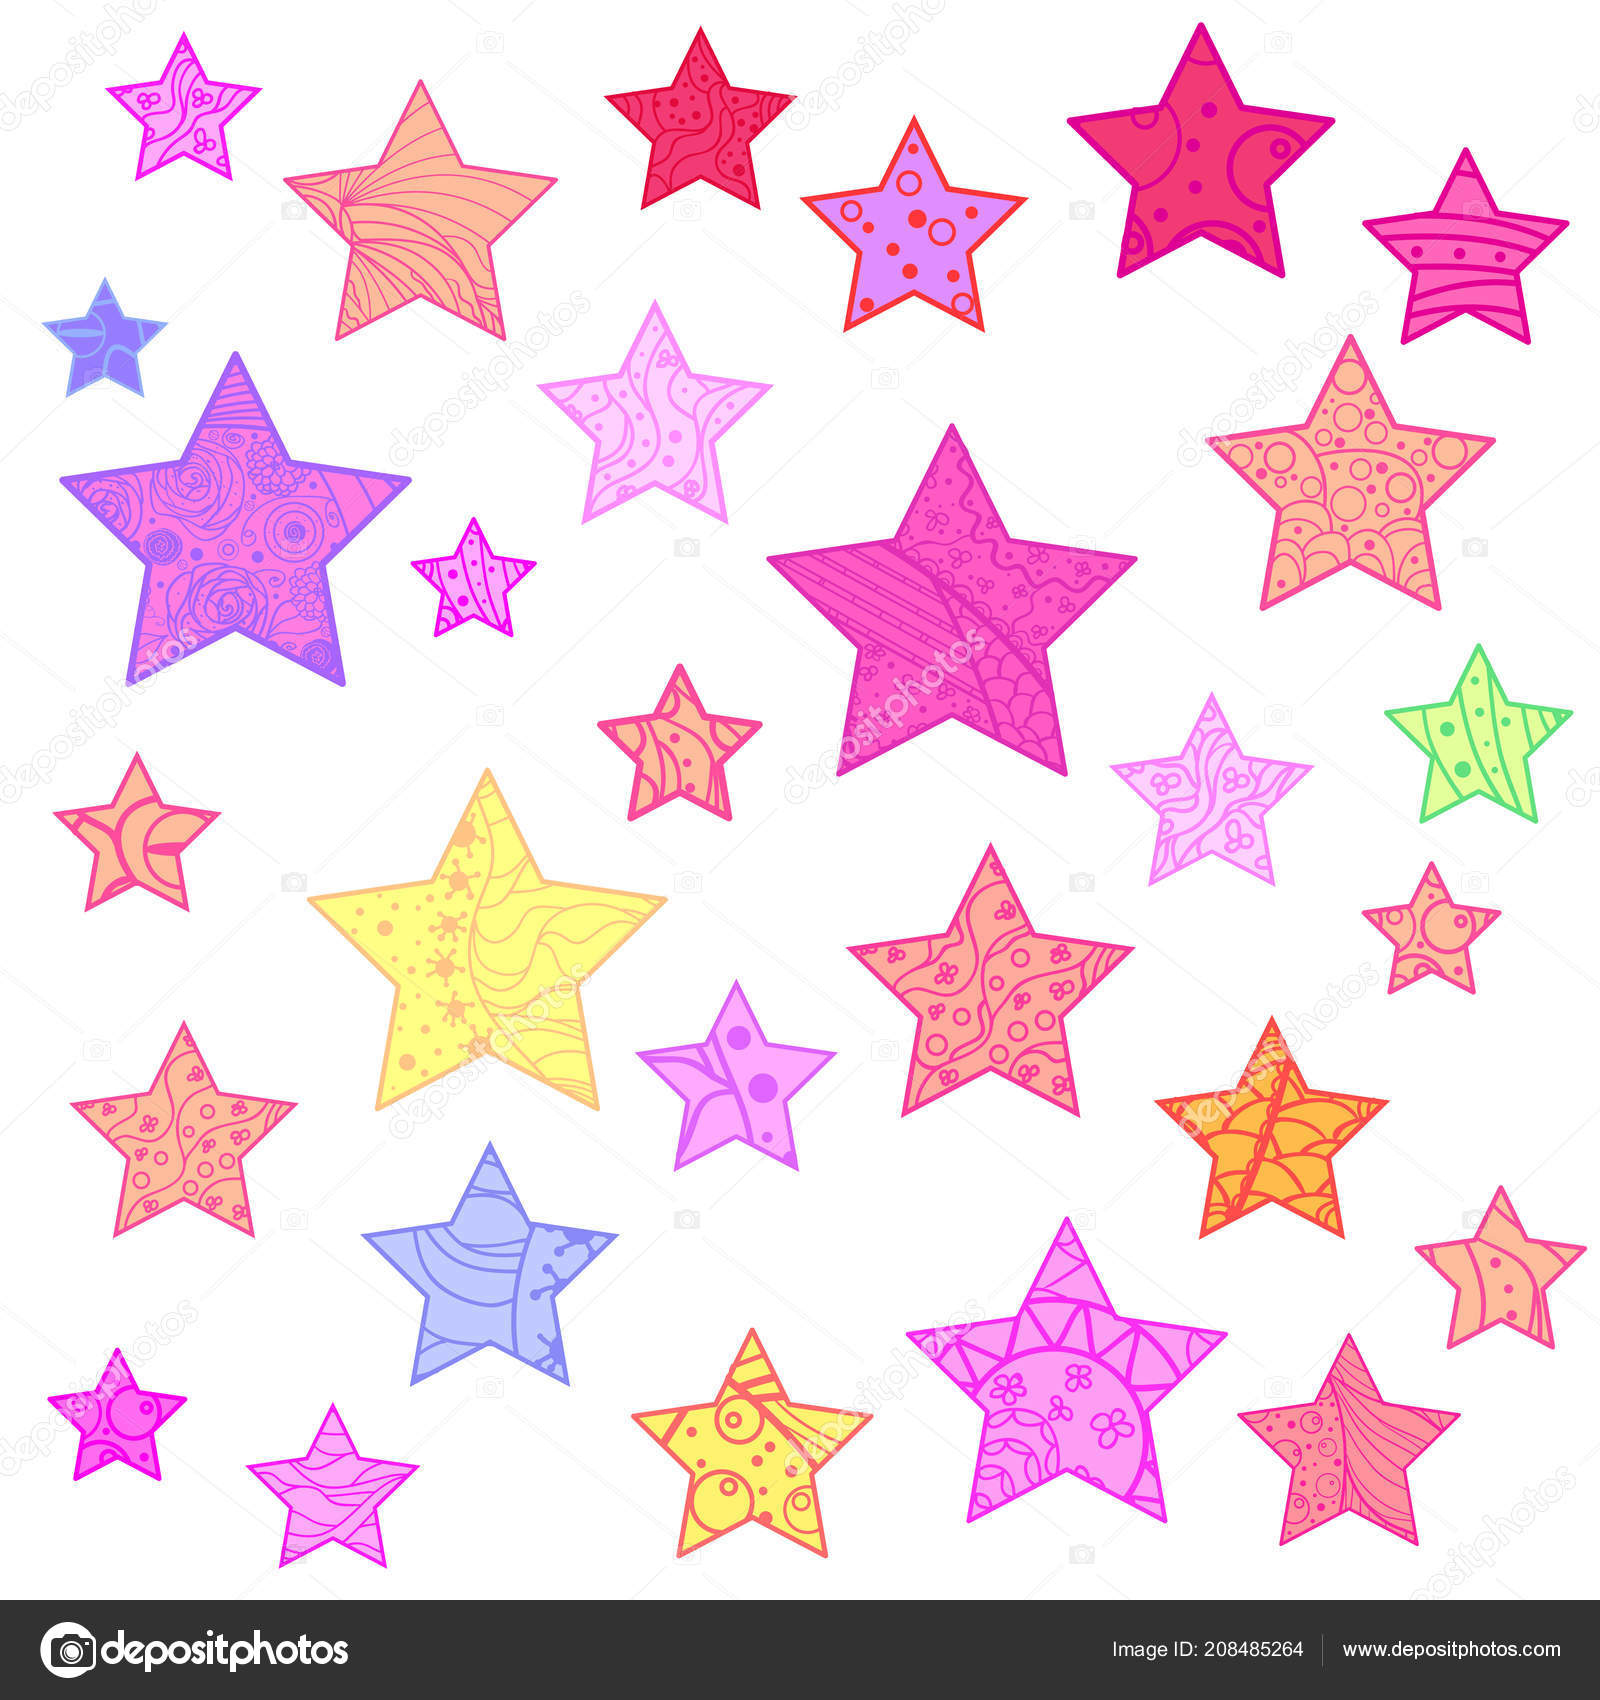 Pictures Printable Stars To Color Colorful Stars White Abstract Colored Patterns Isolated Background Design Spiritual Stock Vector C Mikabesfamilnaya 208485264